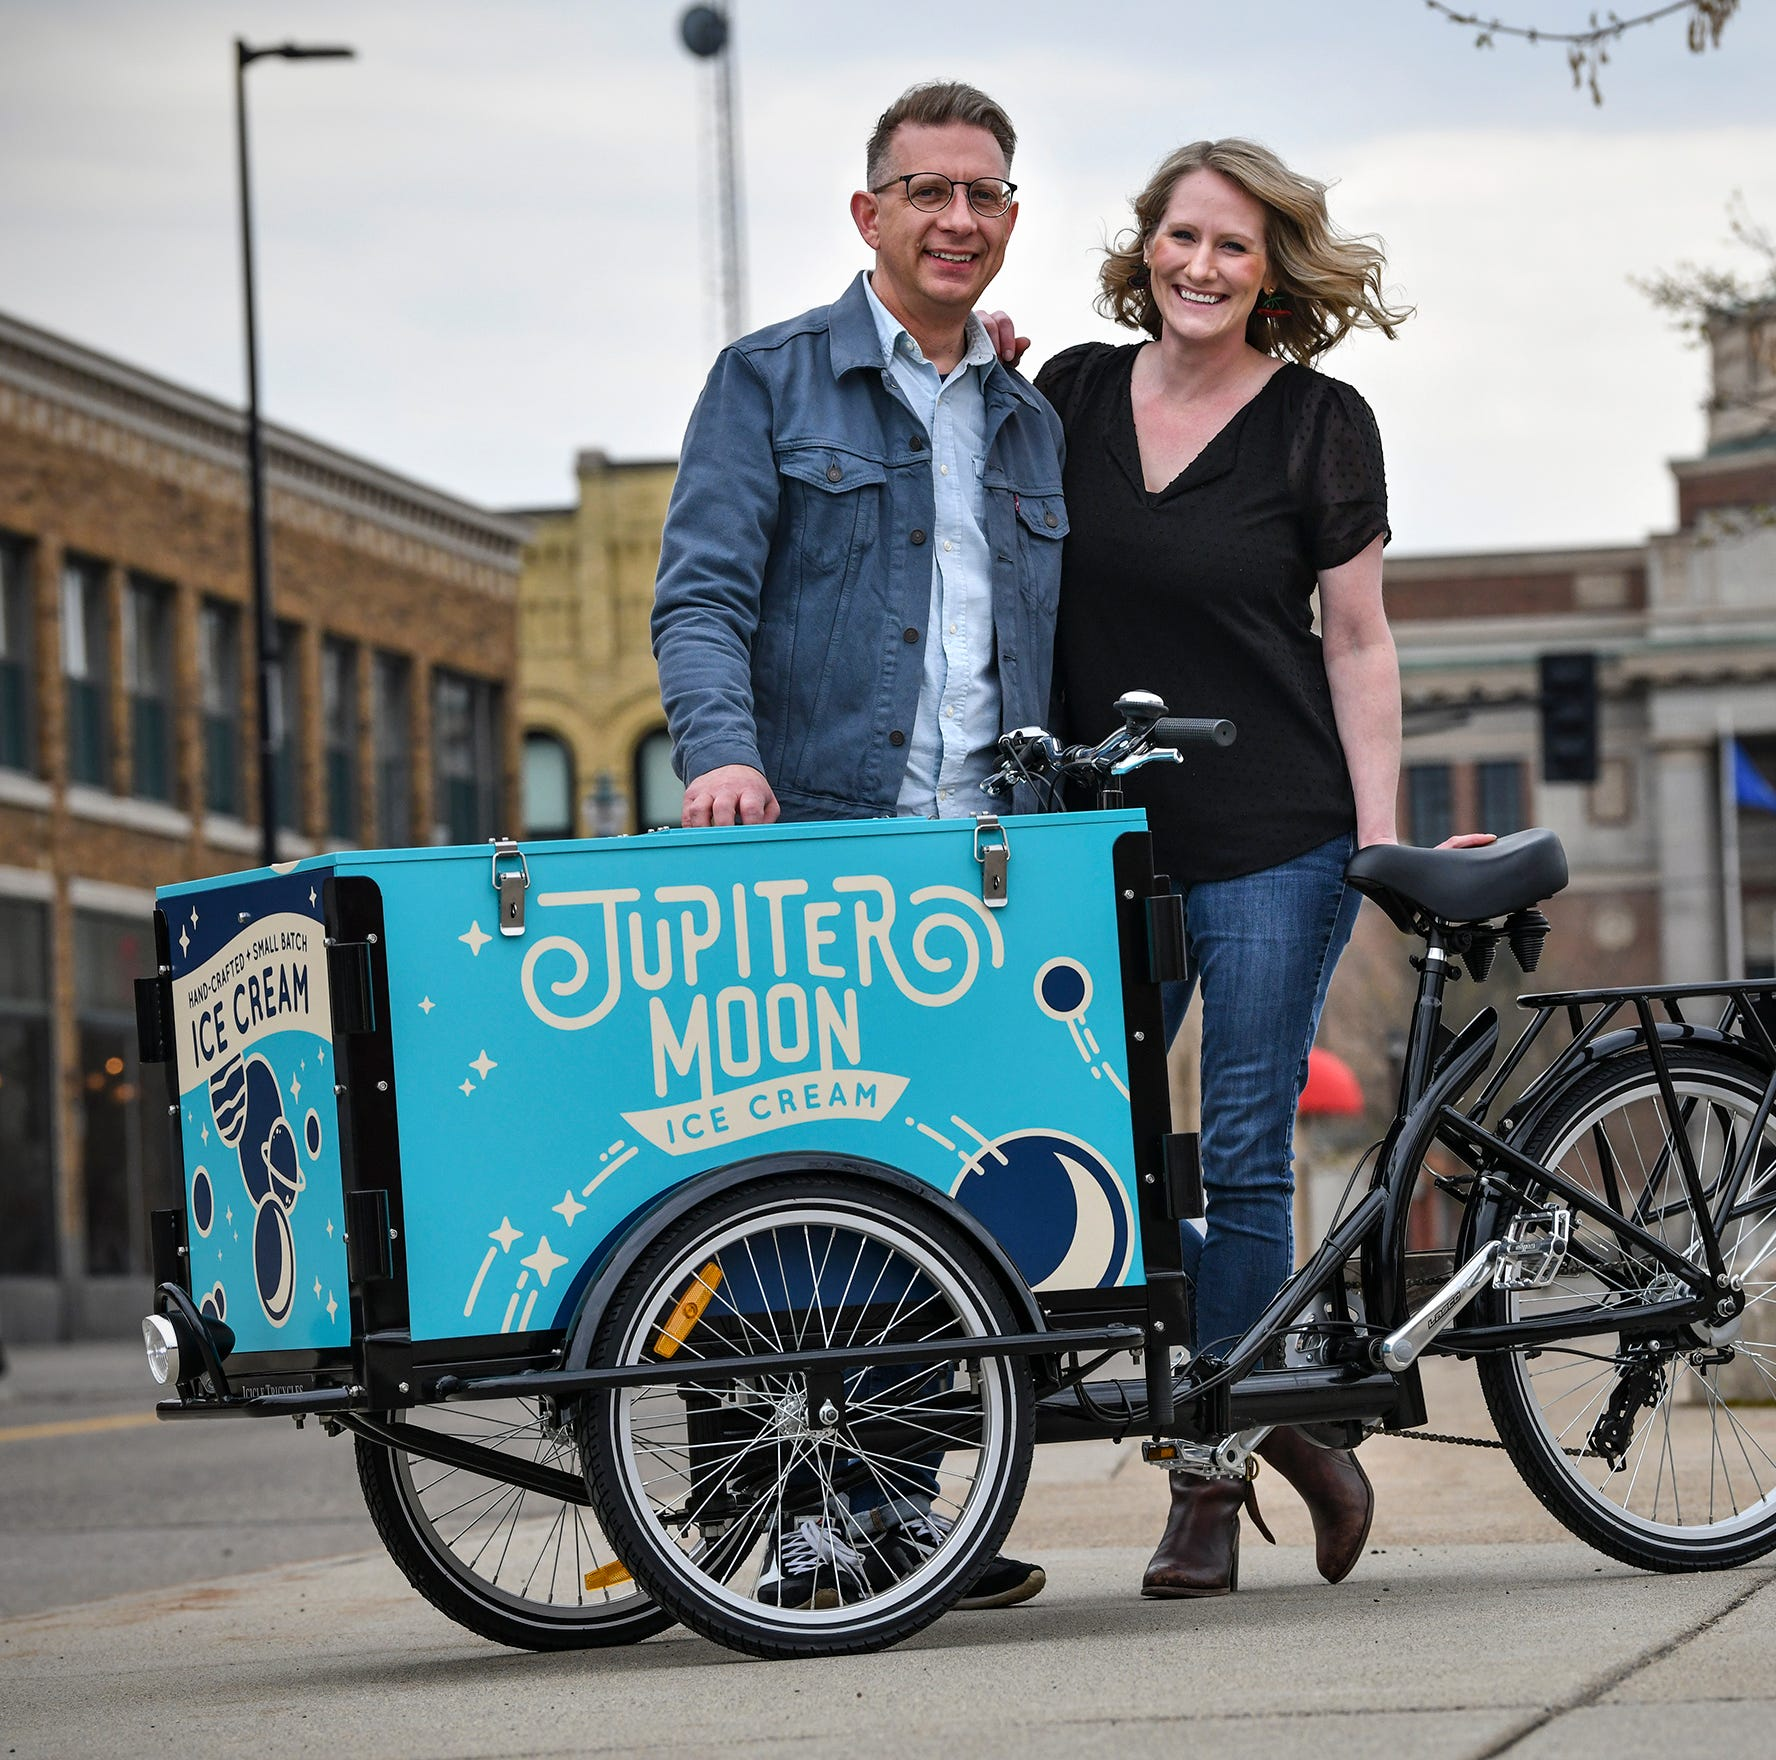 Jupiter Moon handmade, small batch ice cream rolling into St. Cloud this summer